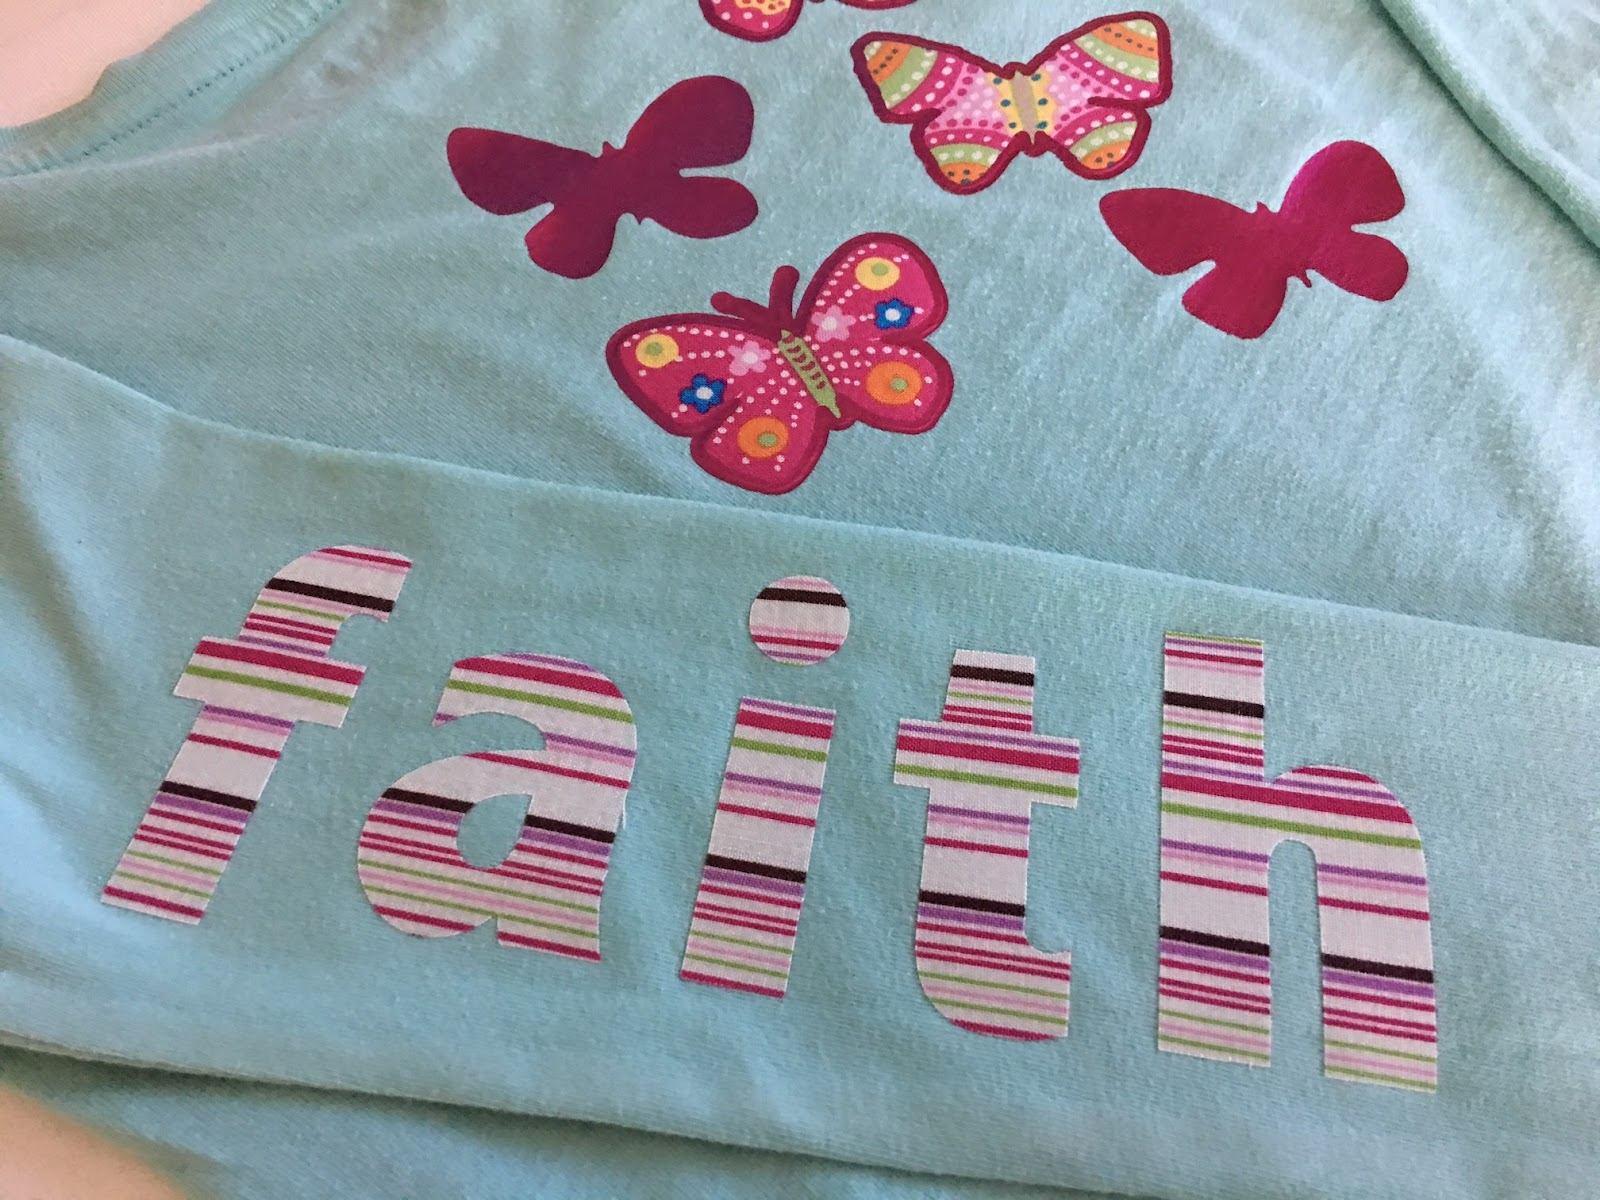 Cutting Fabric With Silhouette Cameo And Terial Magic